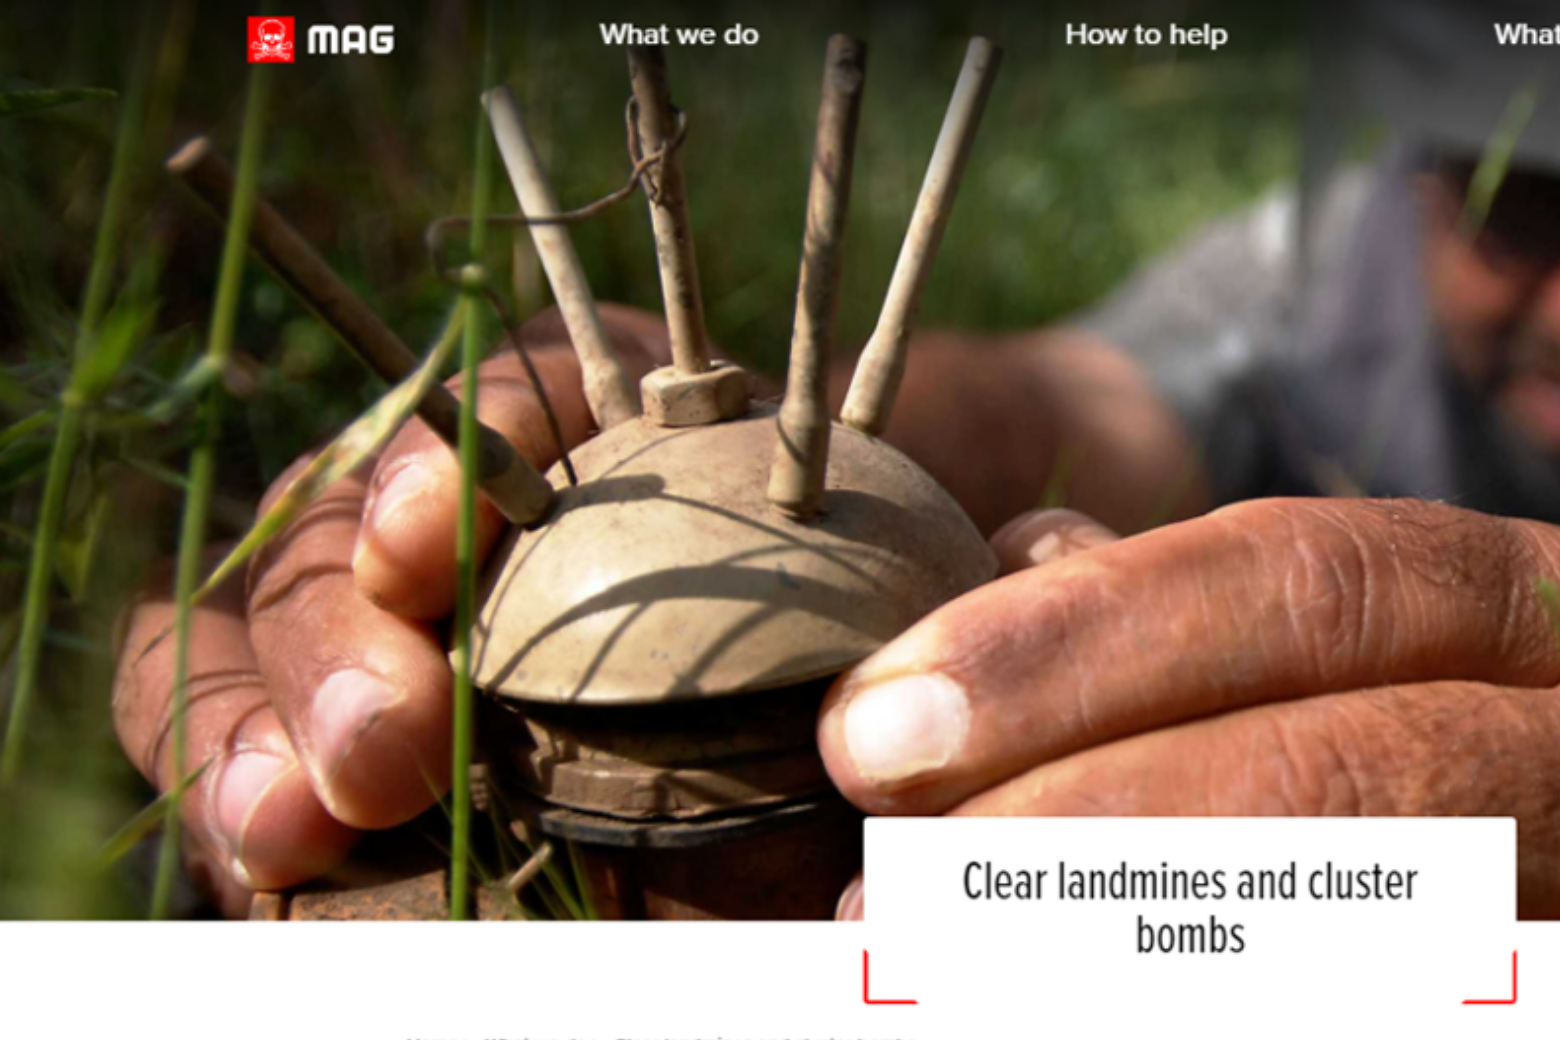 Man carefully holding landmine